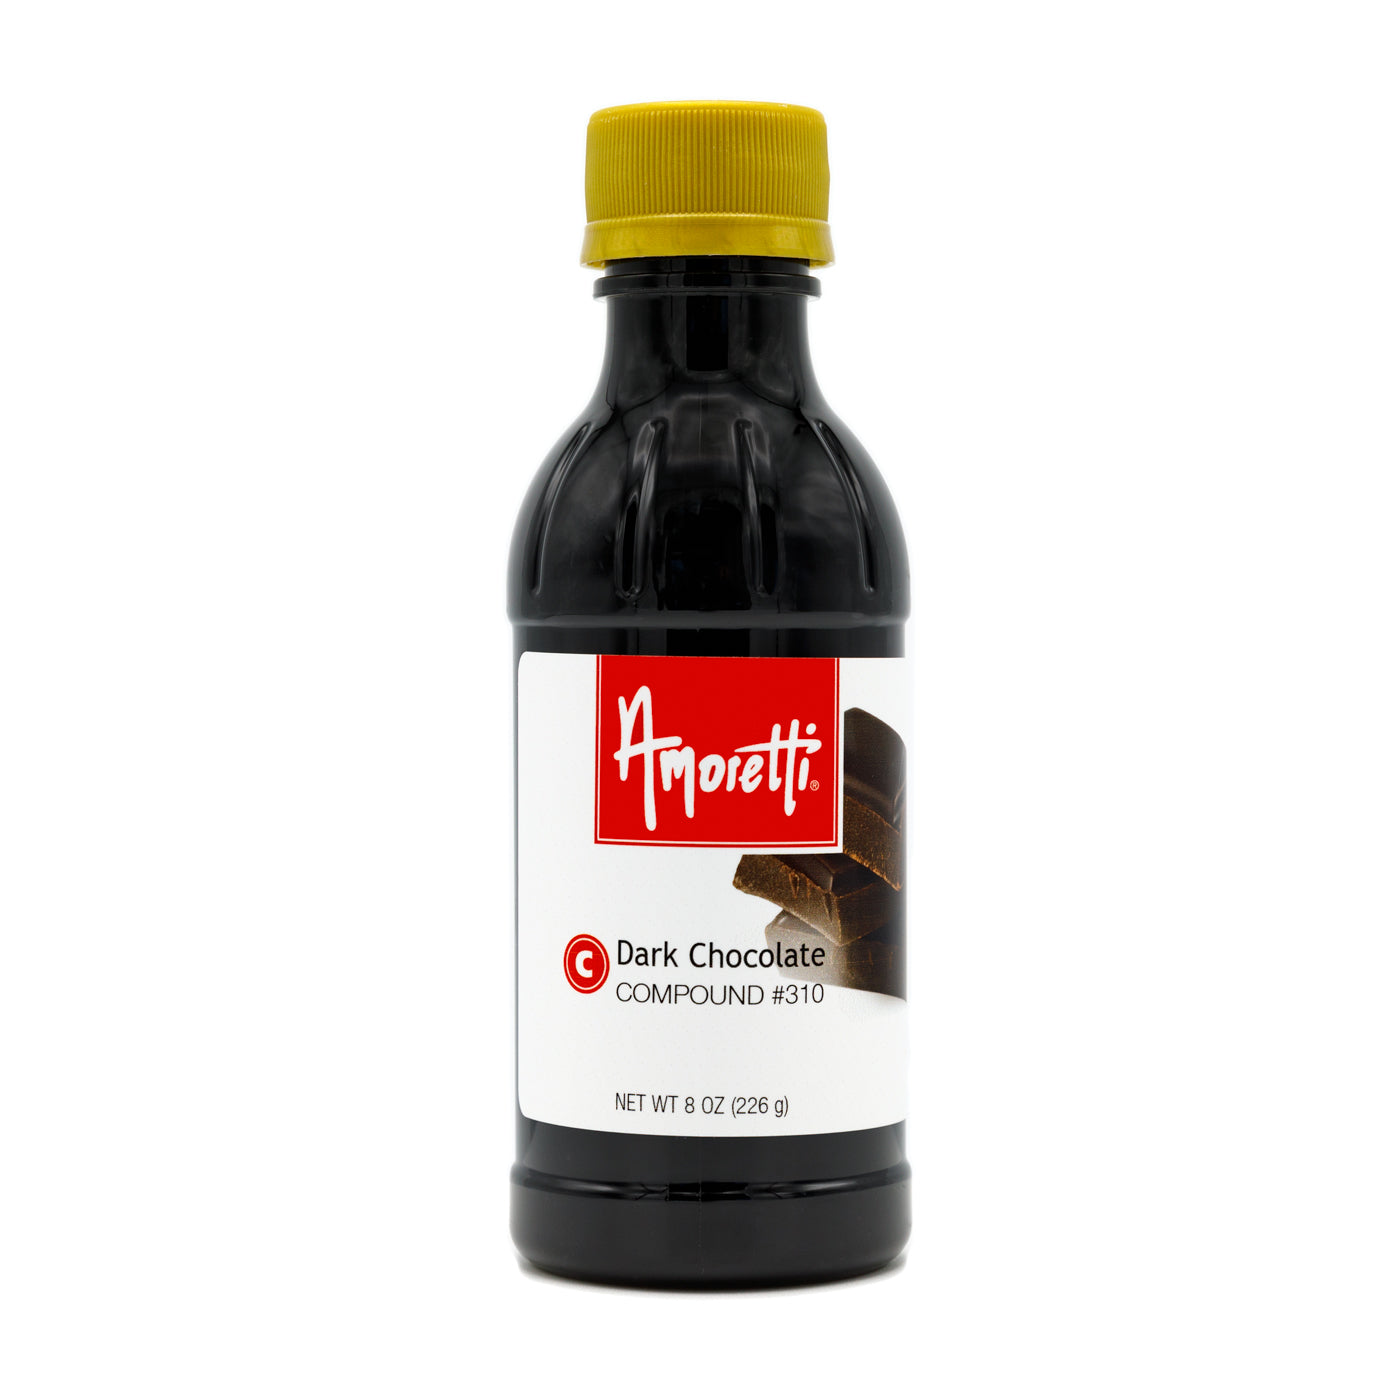 Amoretti Dark Chocolate Compound